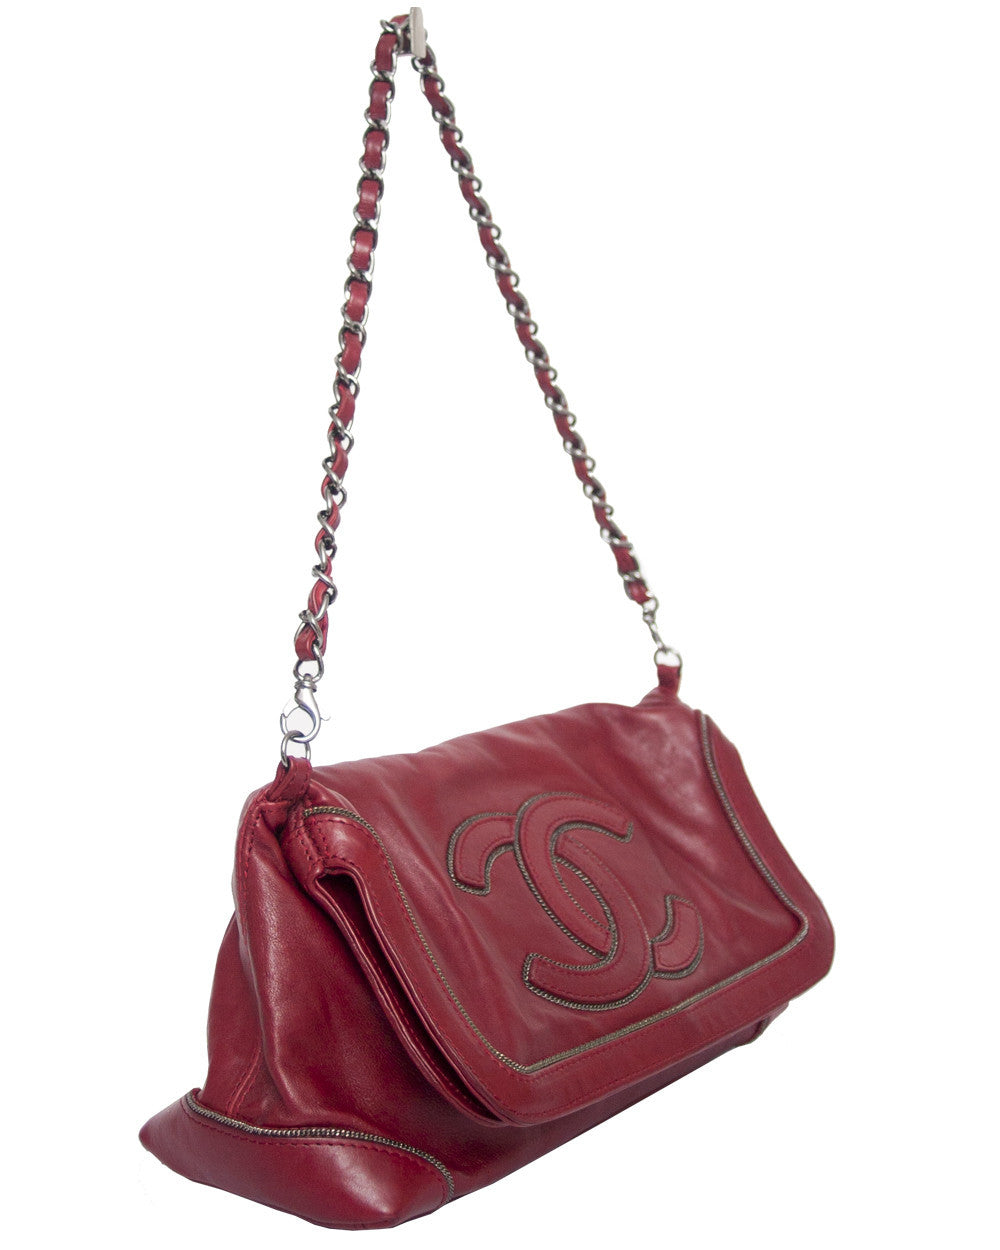 Chanel Fold Over Bag